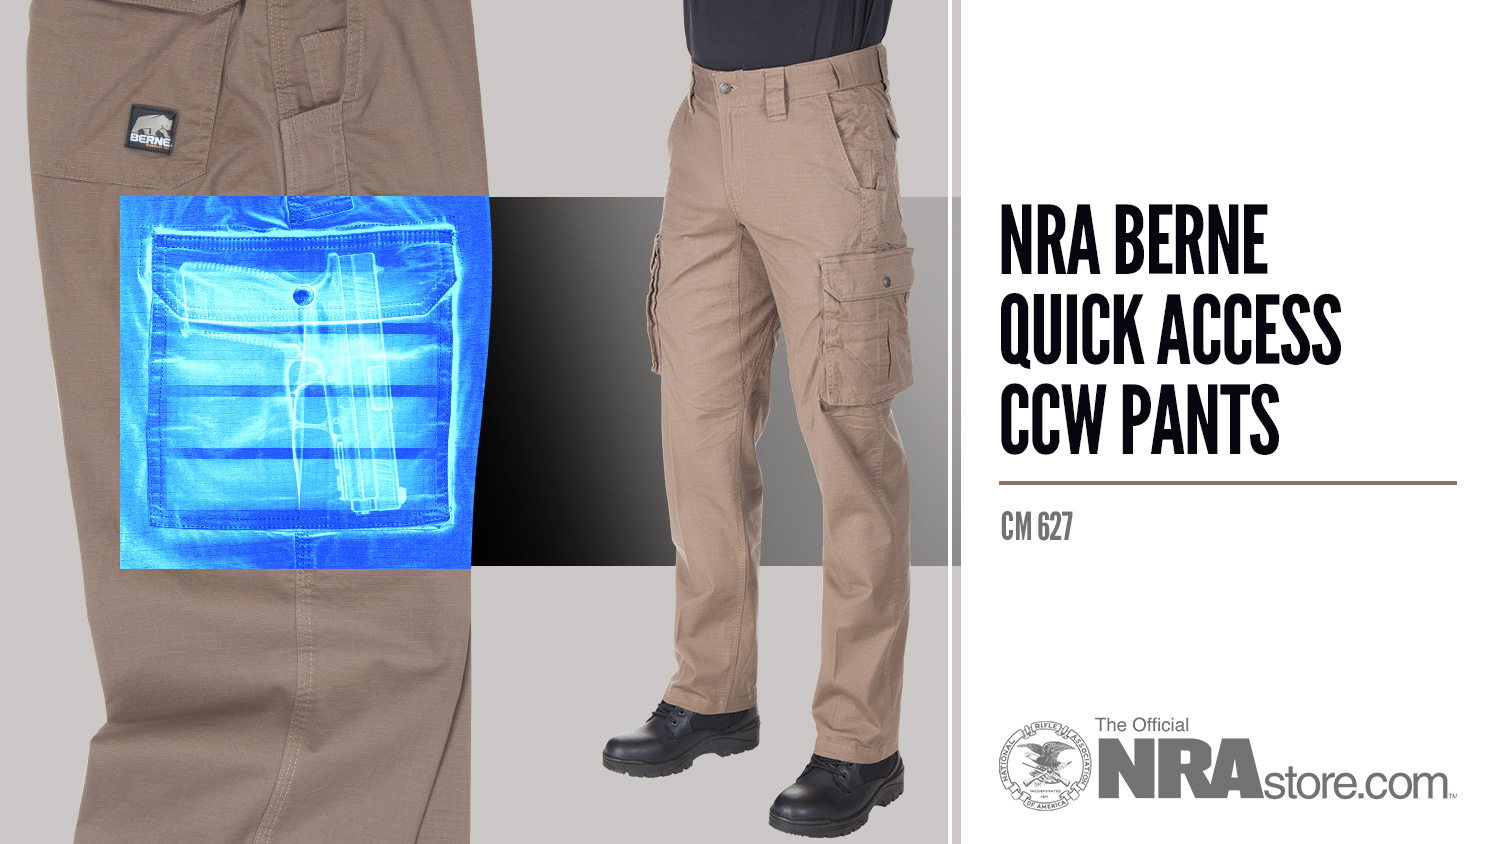 NRAstore Product Highlight: NRA Berne Quick Access CCW Pants